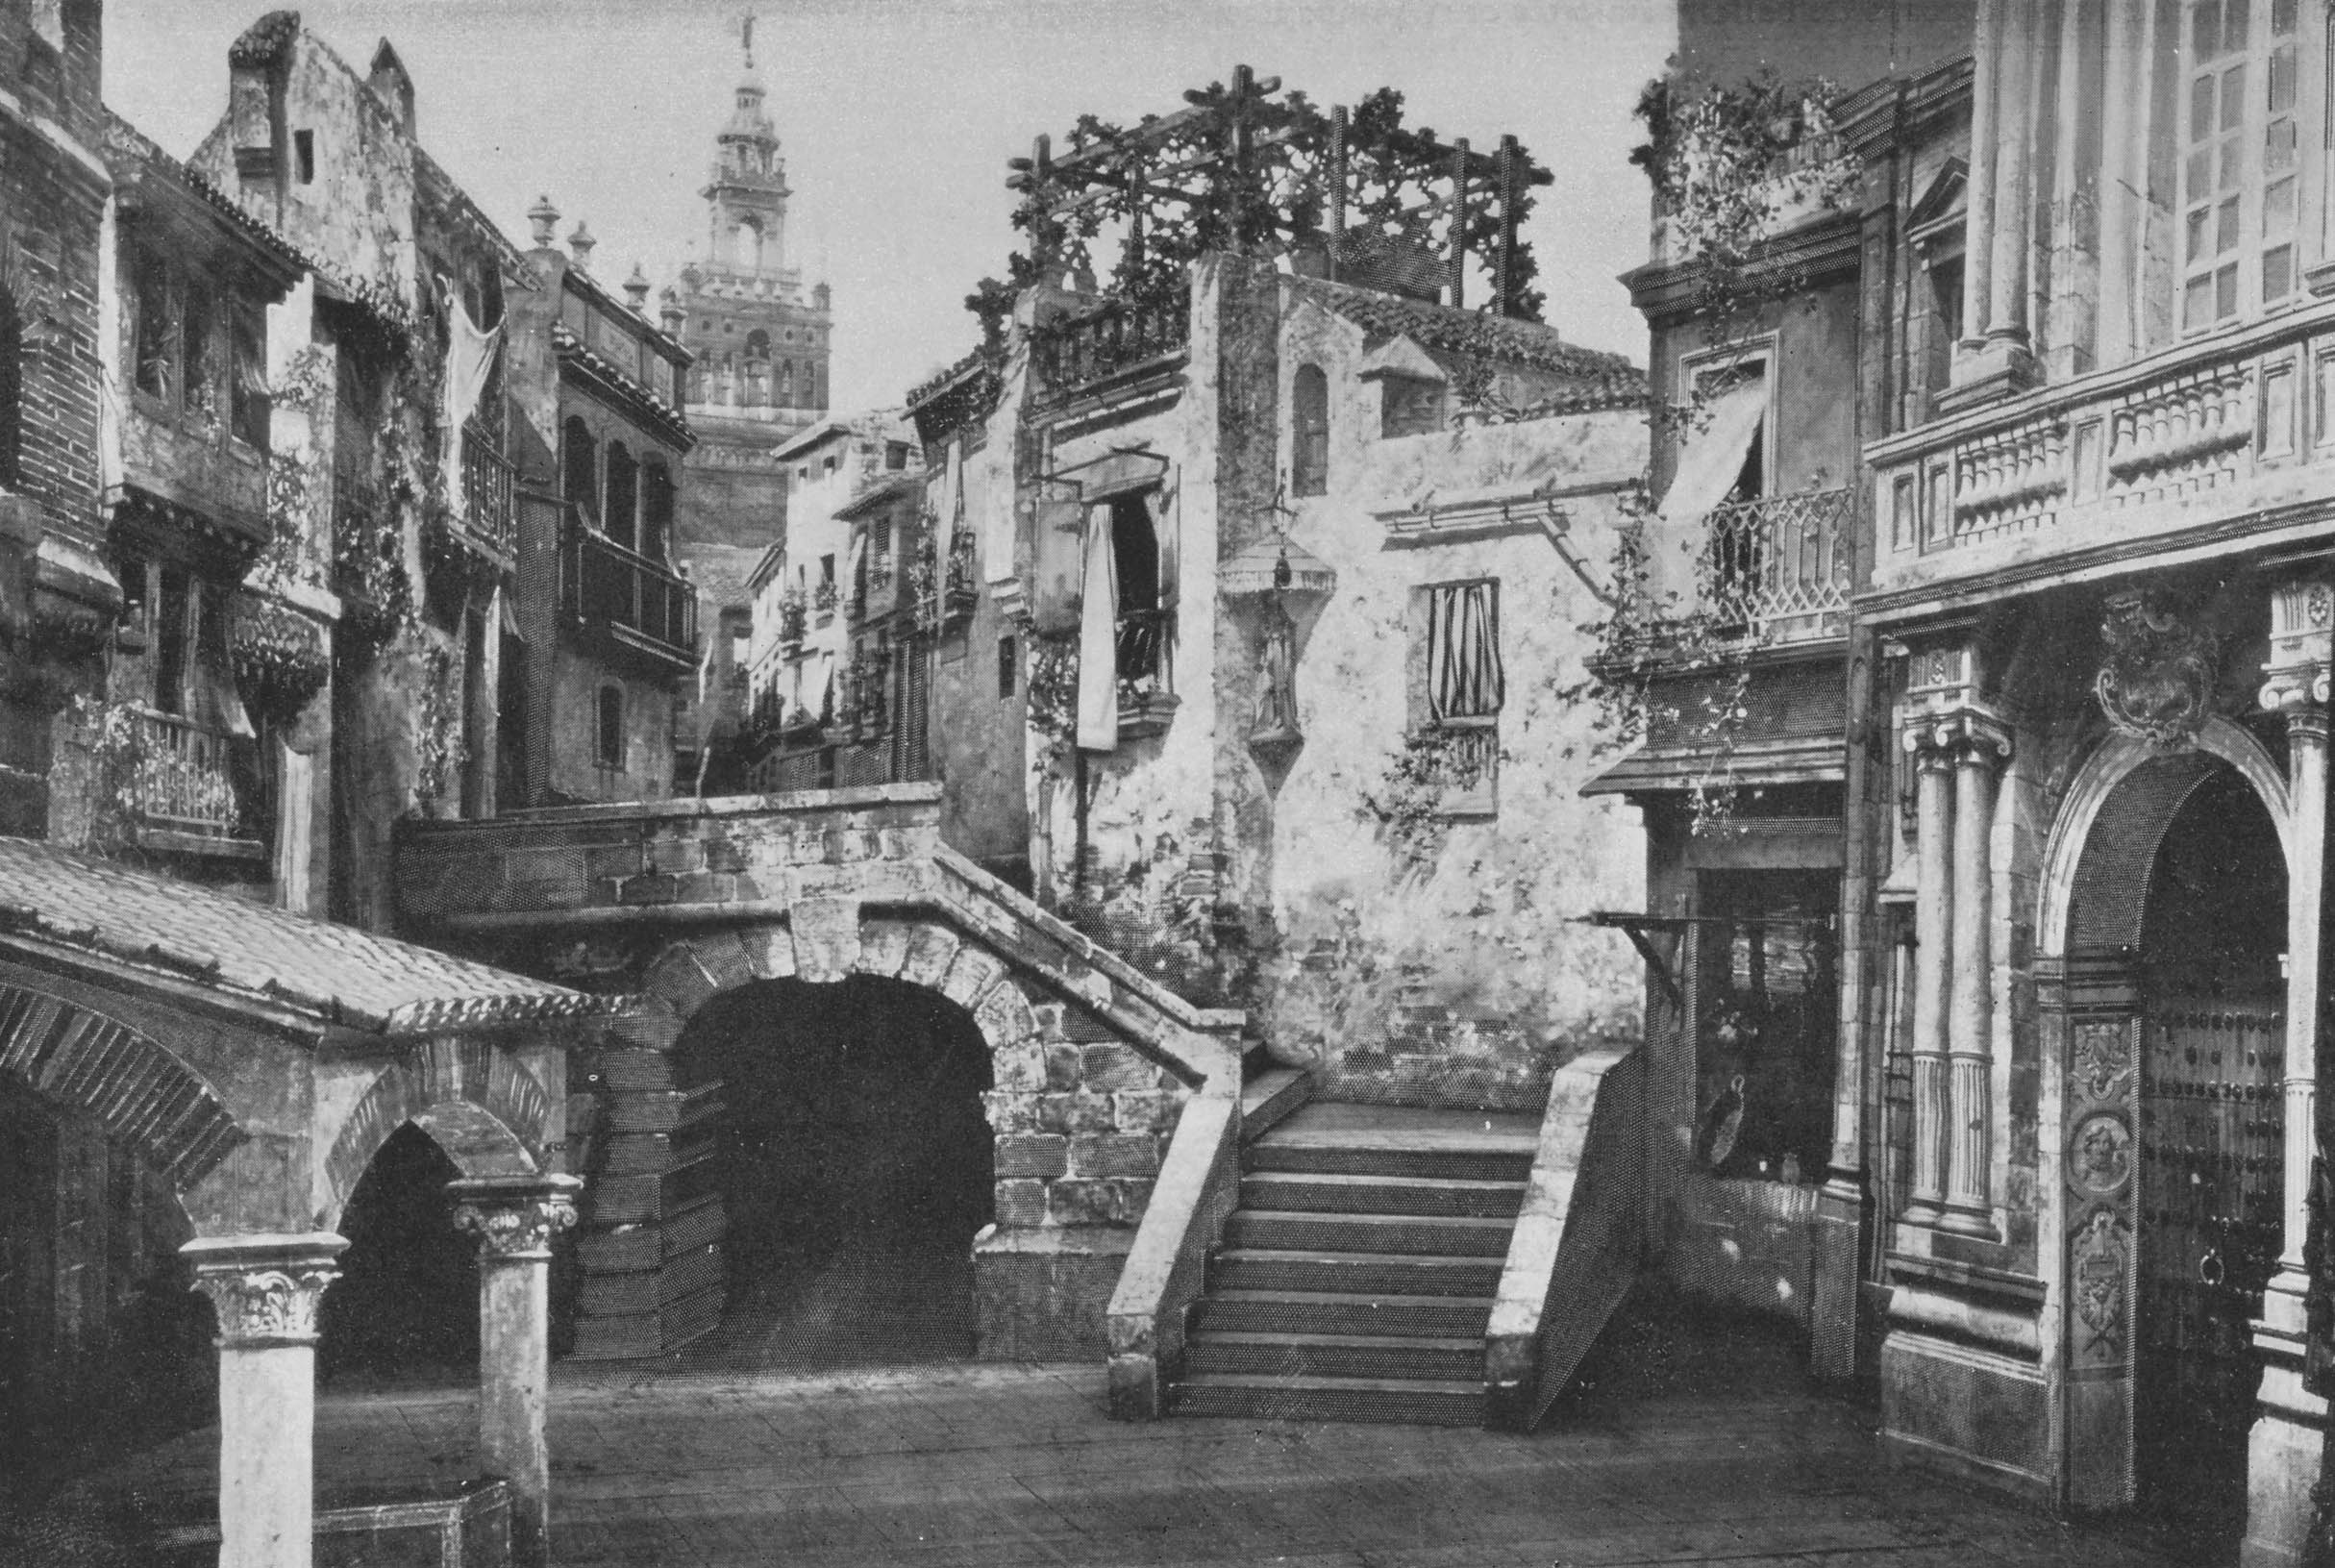 Acte I - Une place à Séville - photo Henri Mairet in Le théâtre 1899, Paris, 1898 Production Run